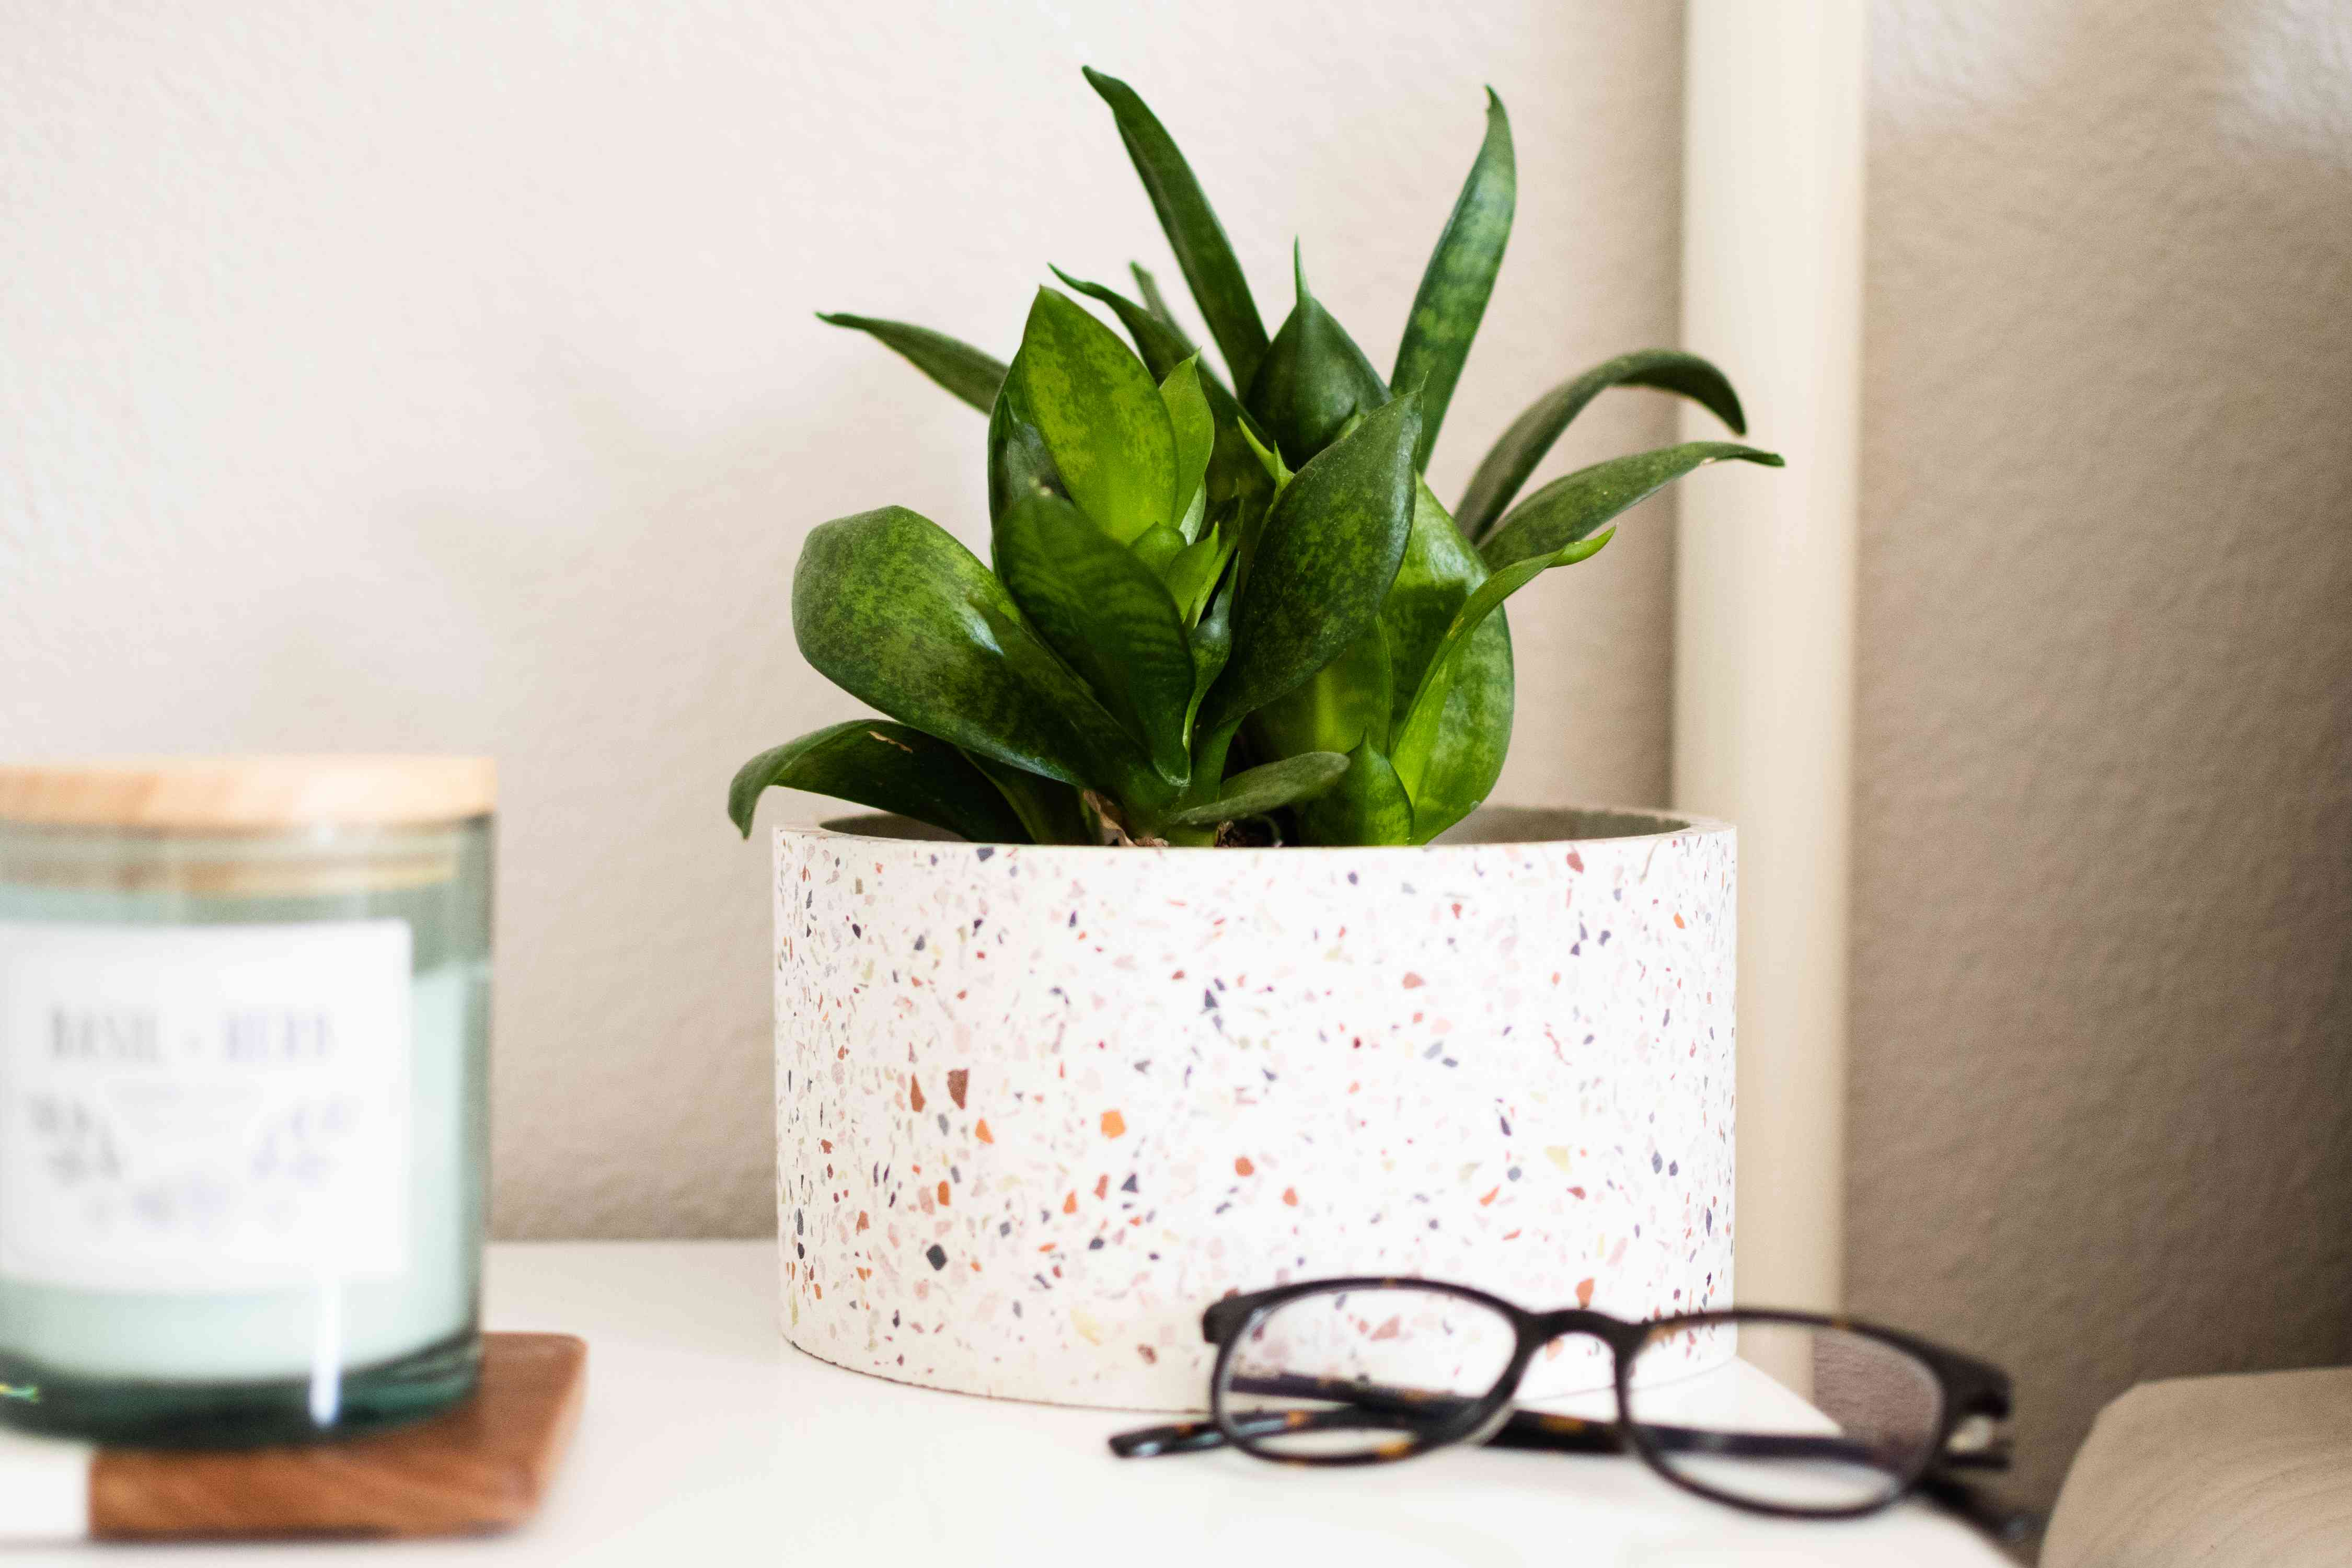 Small houseplant on nightstand next to candle and black eyeglasses